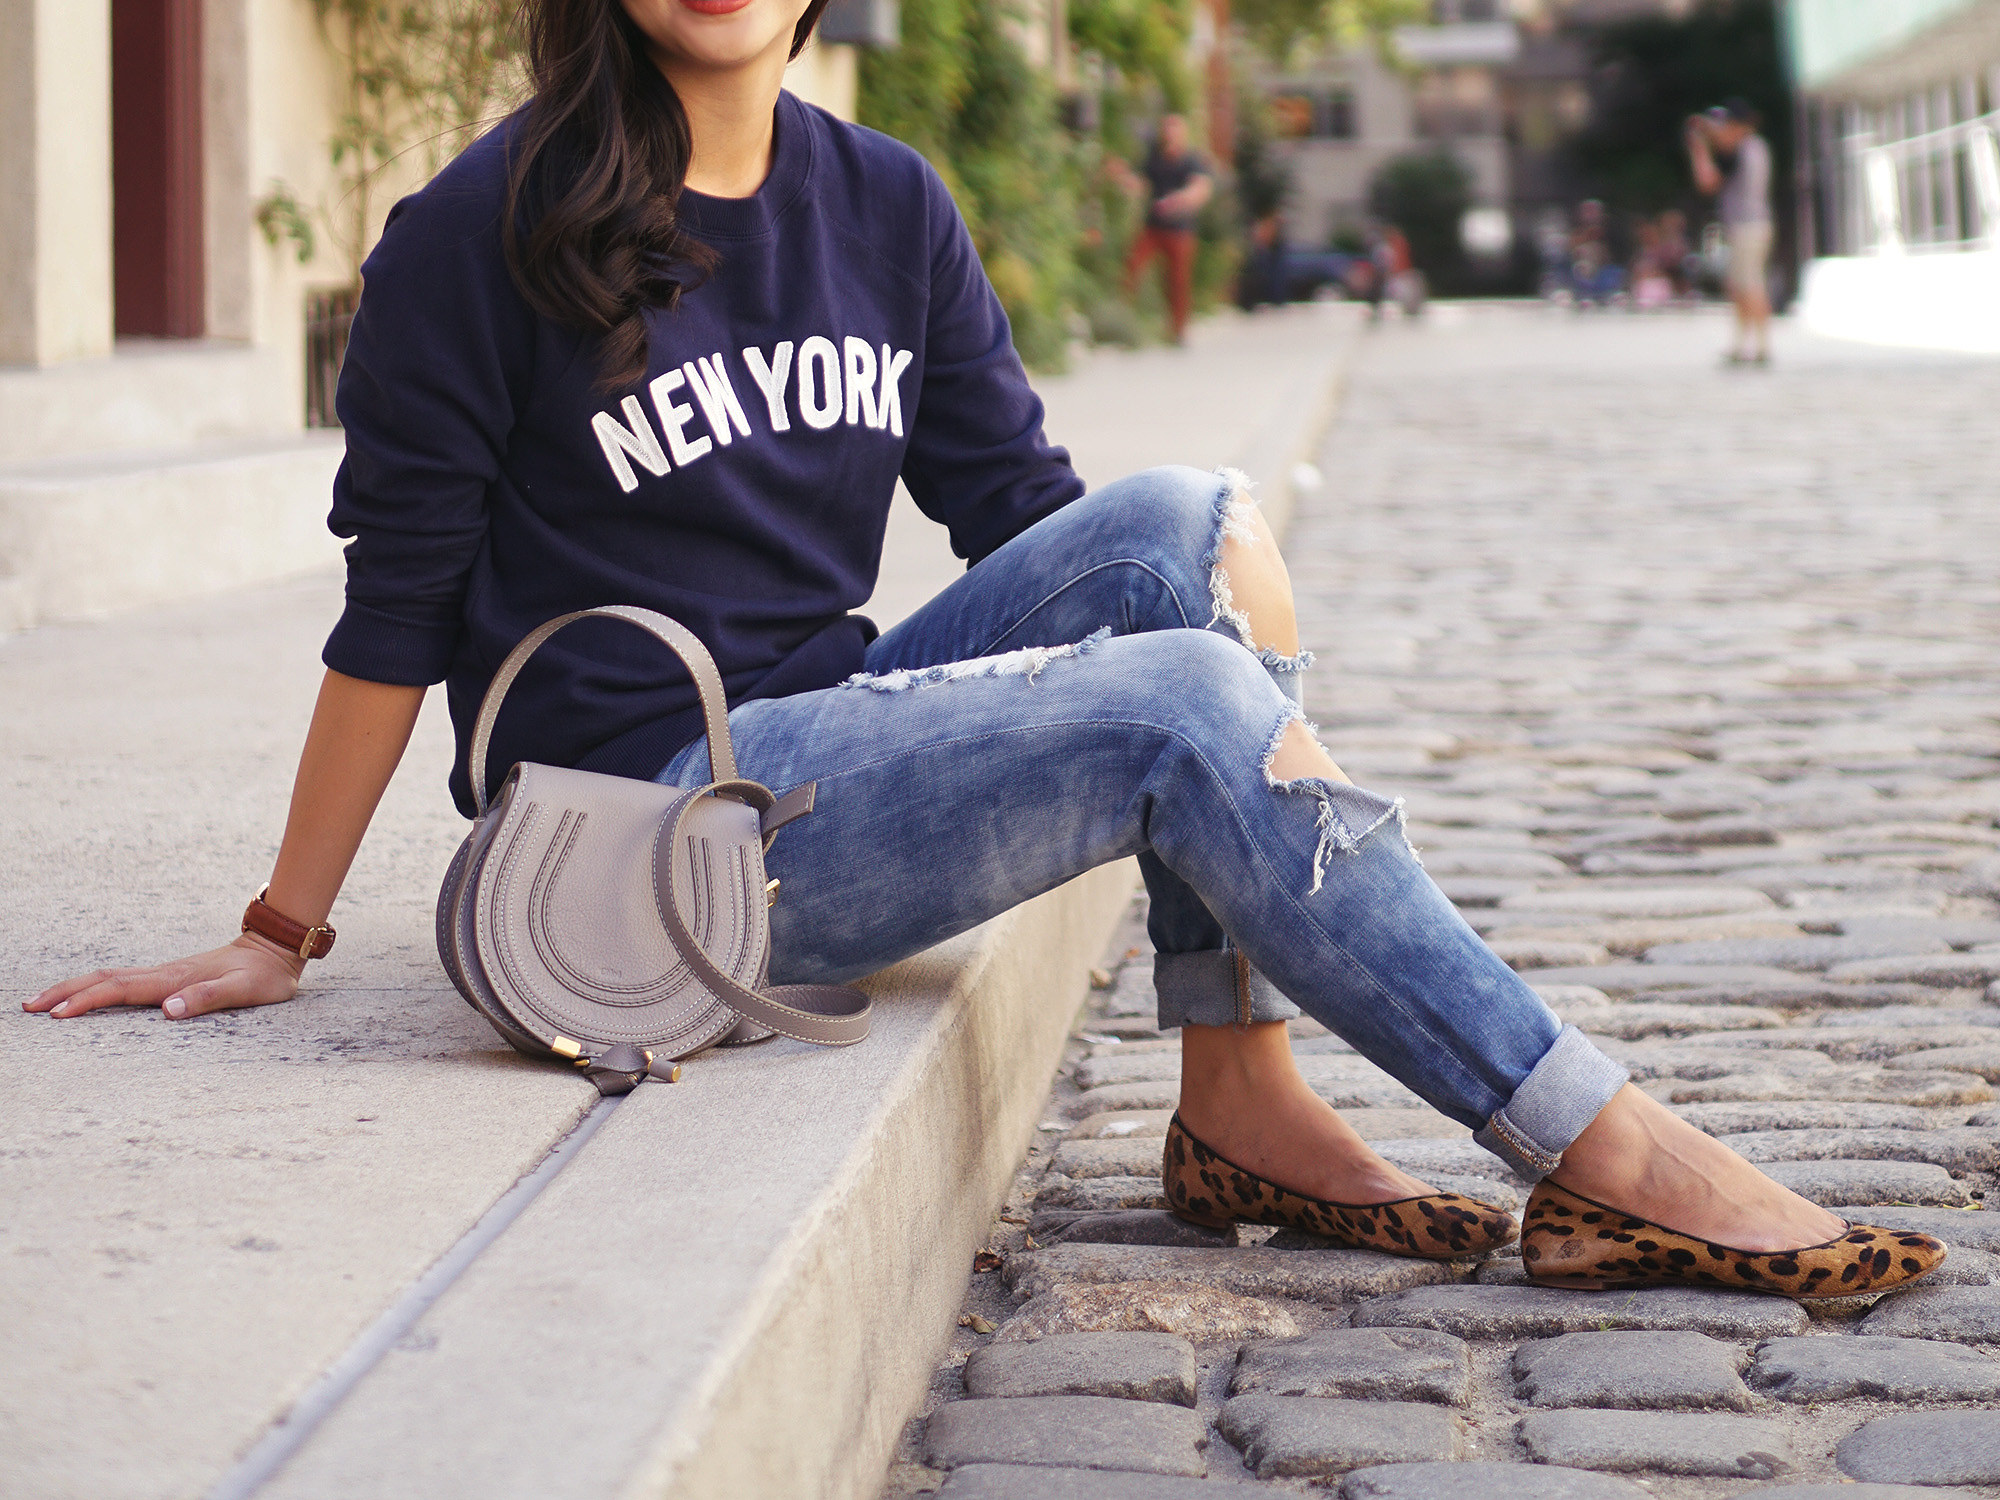 New York Navy Sweatshirt